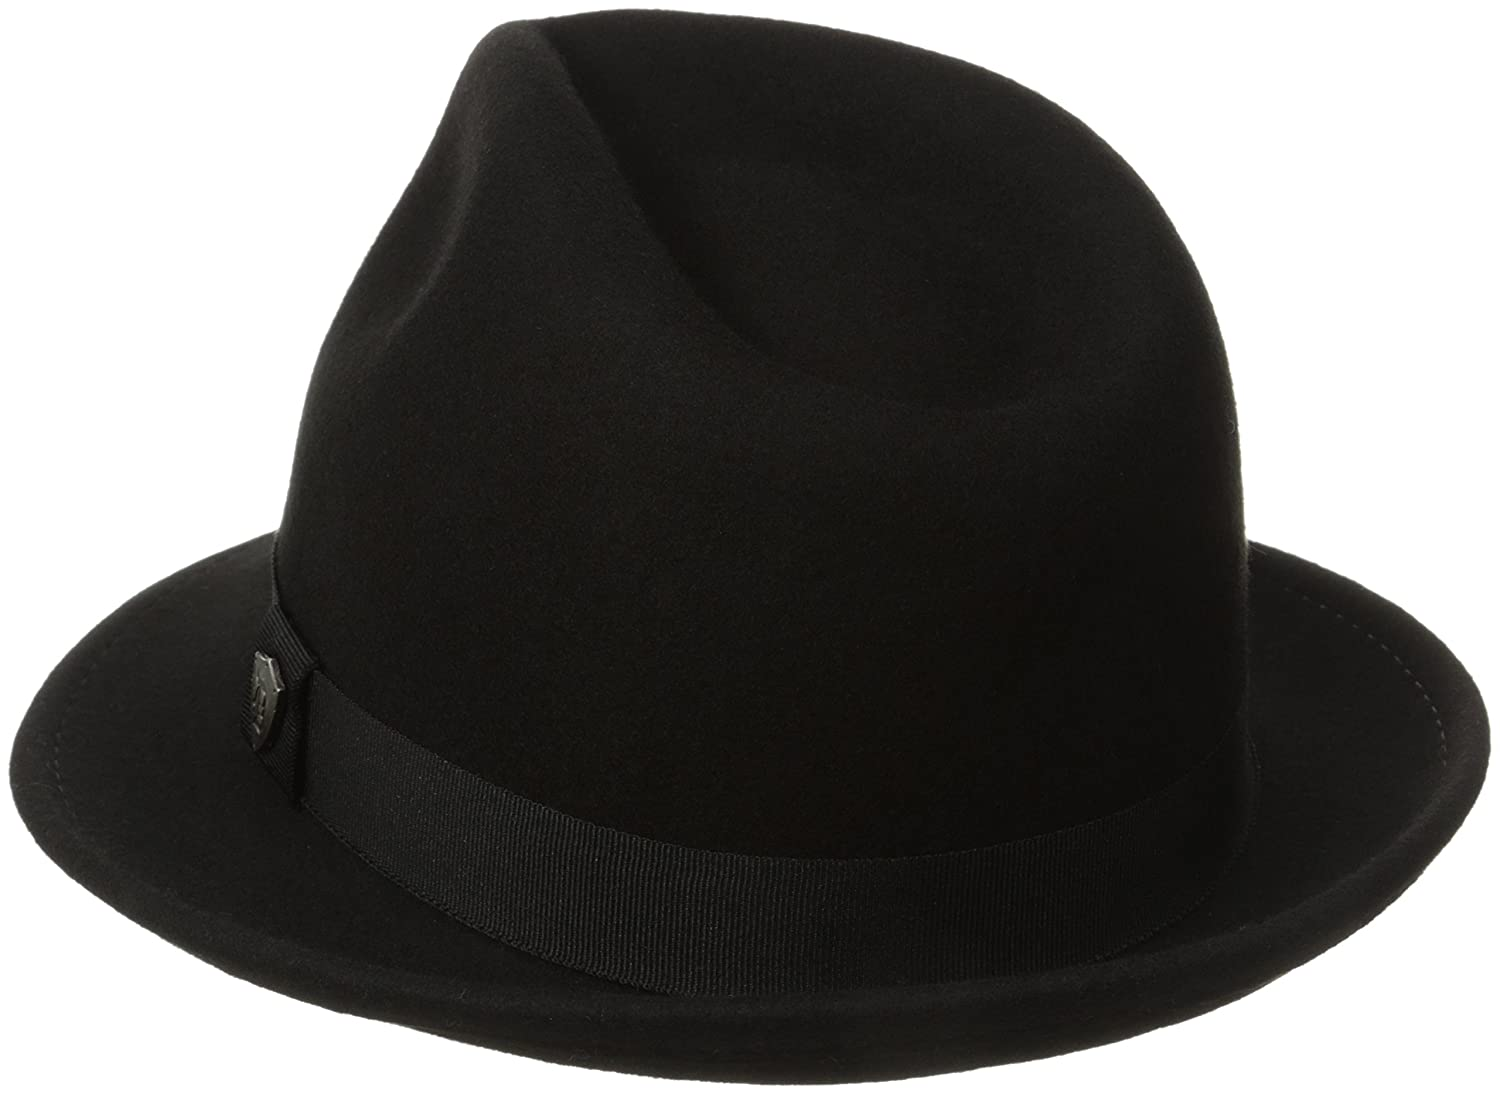 1930s Mens Hat Fashion Dorfman Wool Felt Hat $44.95 AT vintagedancer.com